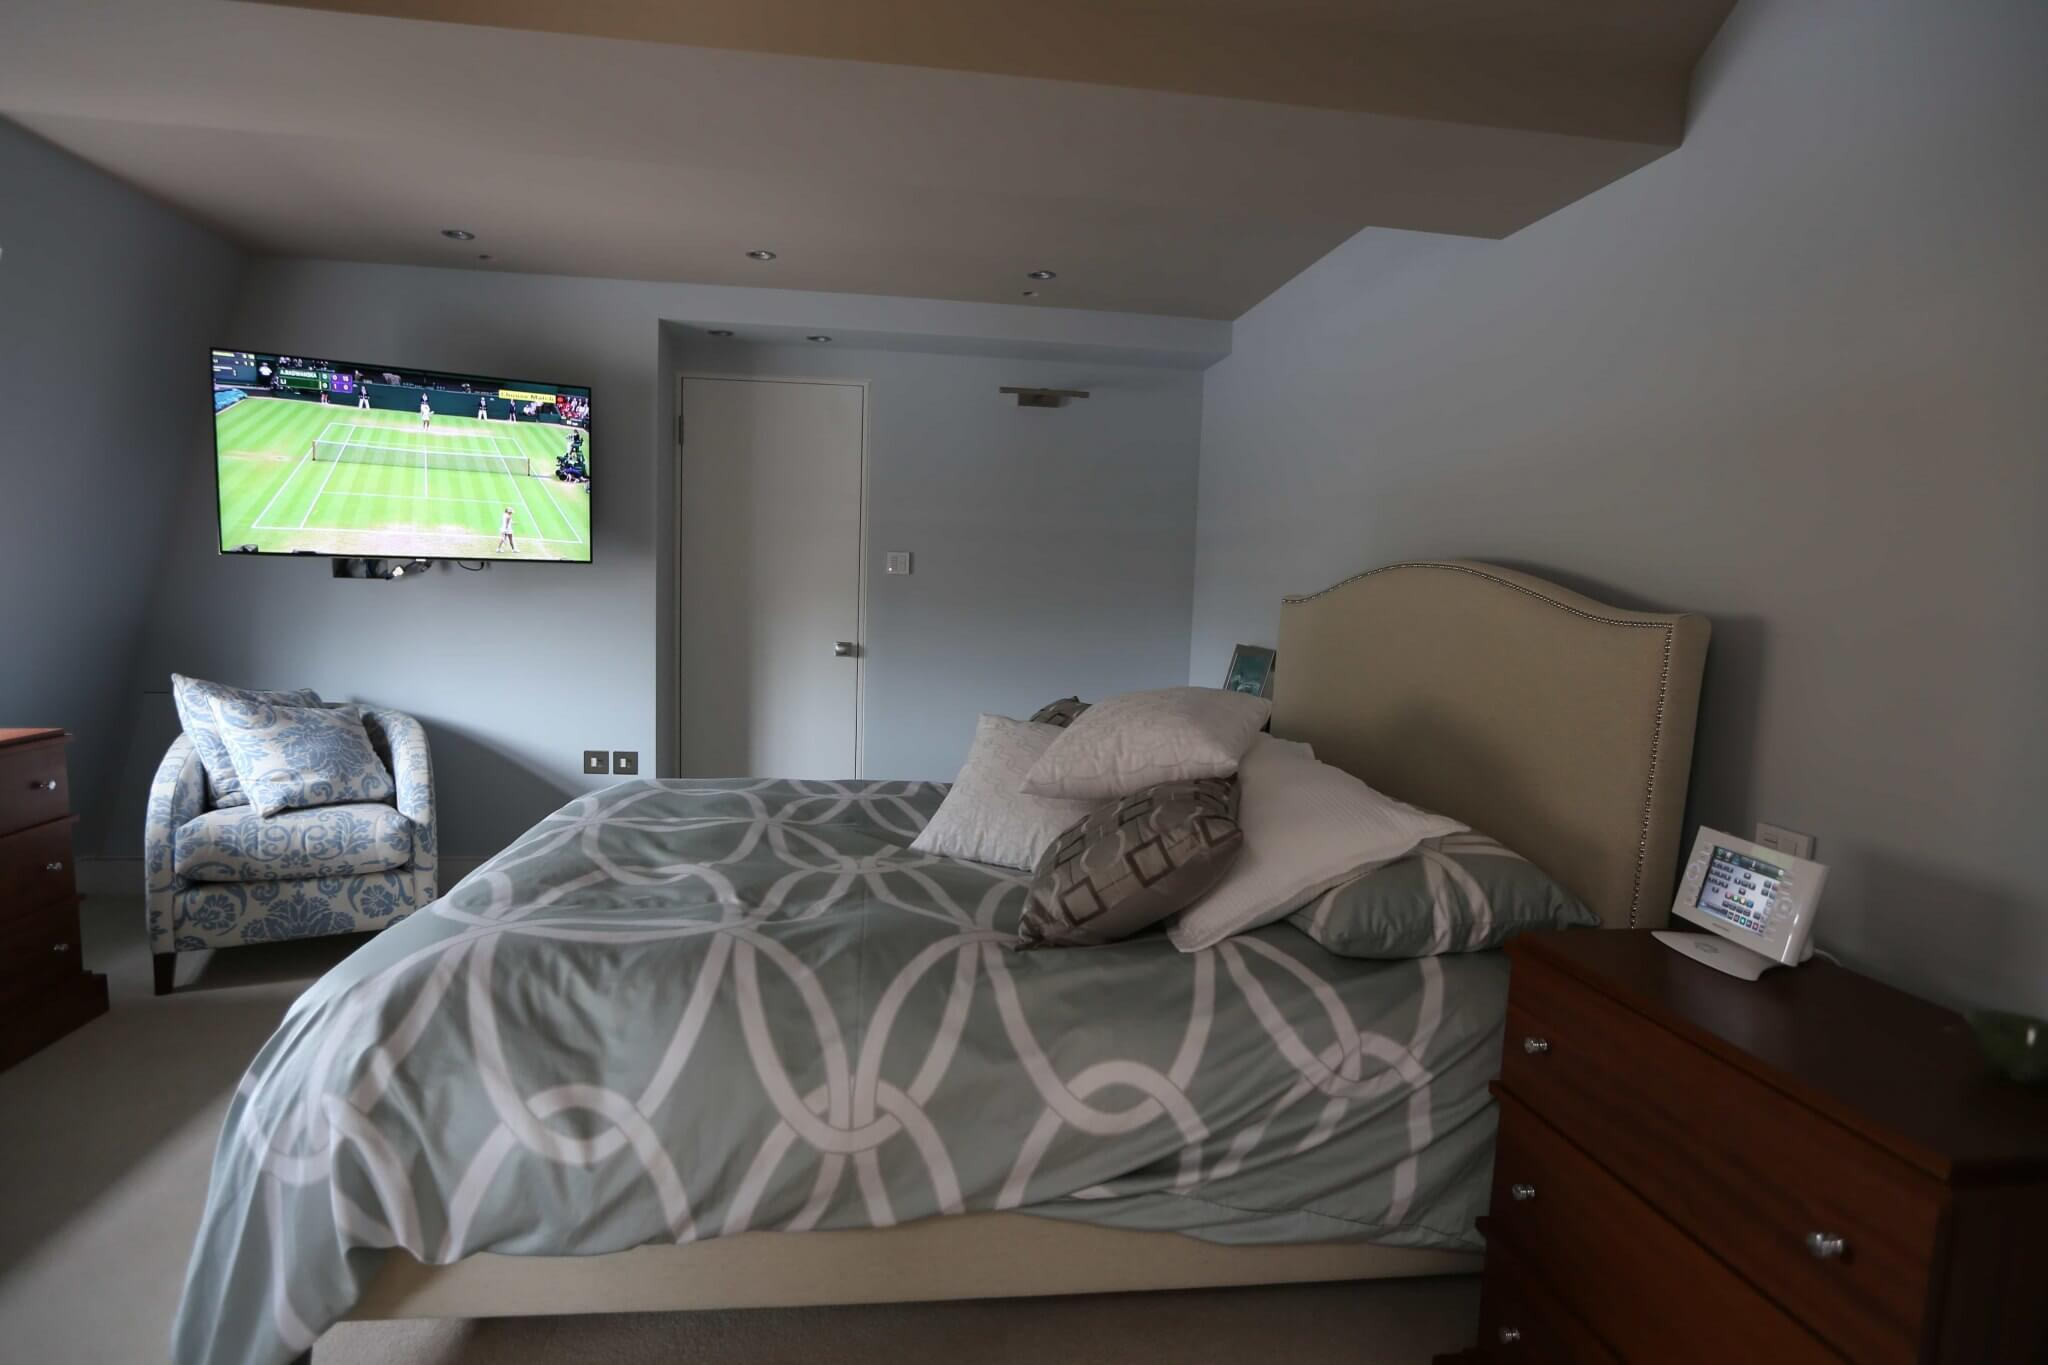 Floating TV in Bedroom as part of Crestron Whole Home System